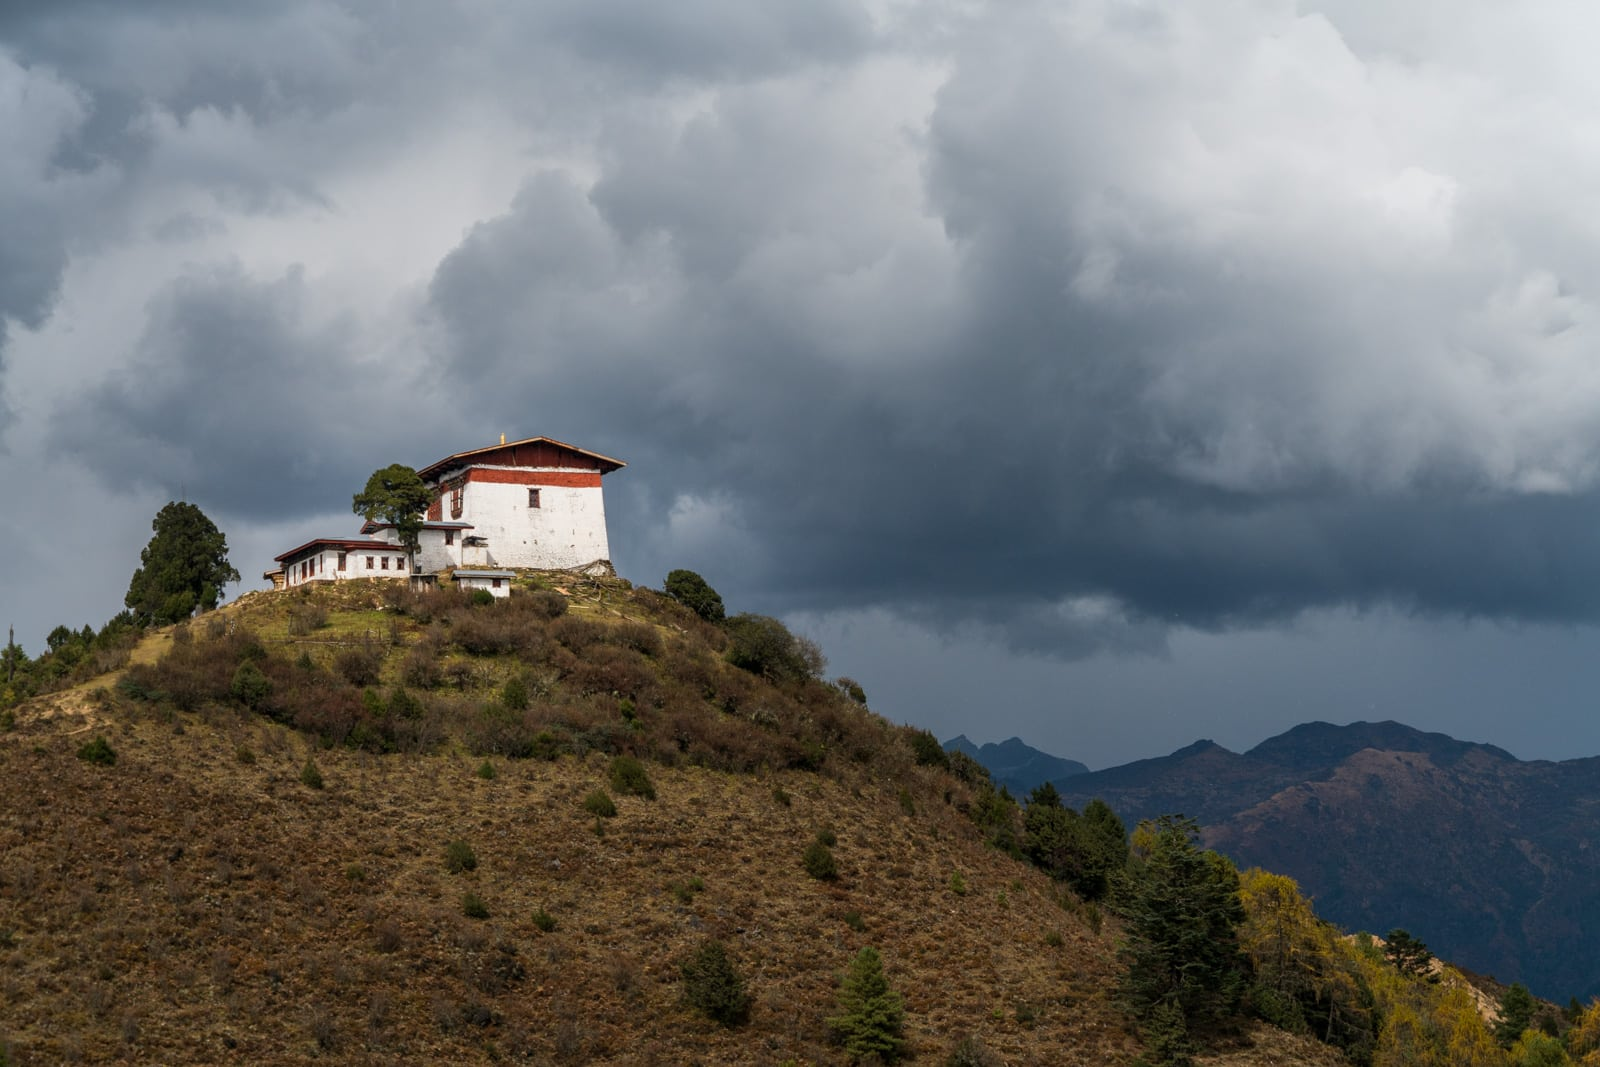 Photos of Bhutan - Storm clouds forming over Jele Dzong - Lost WIth Purpose travel blog